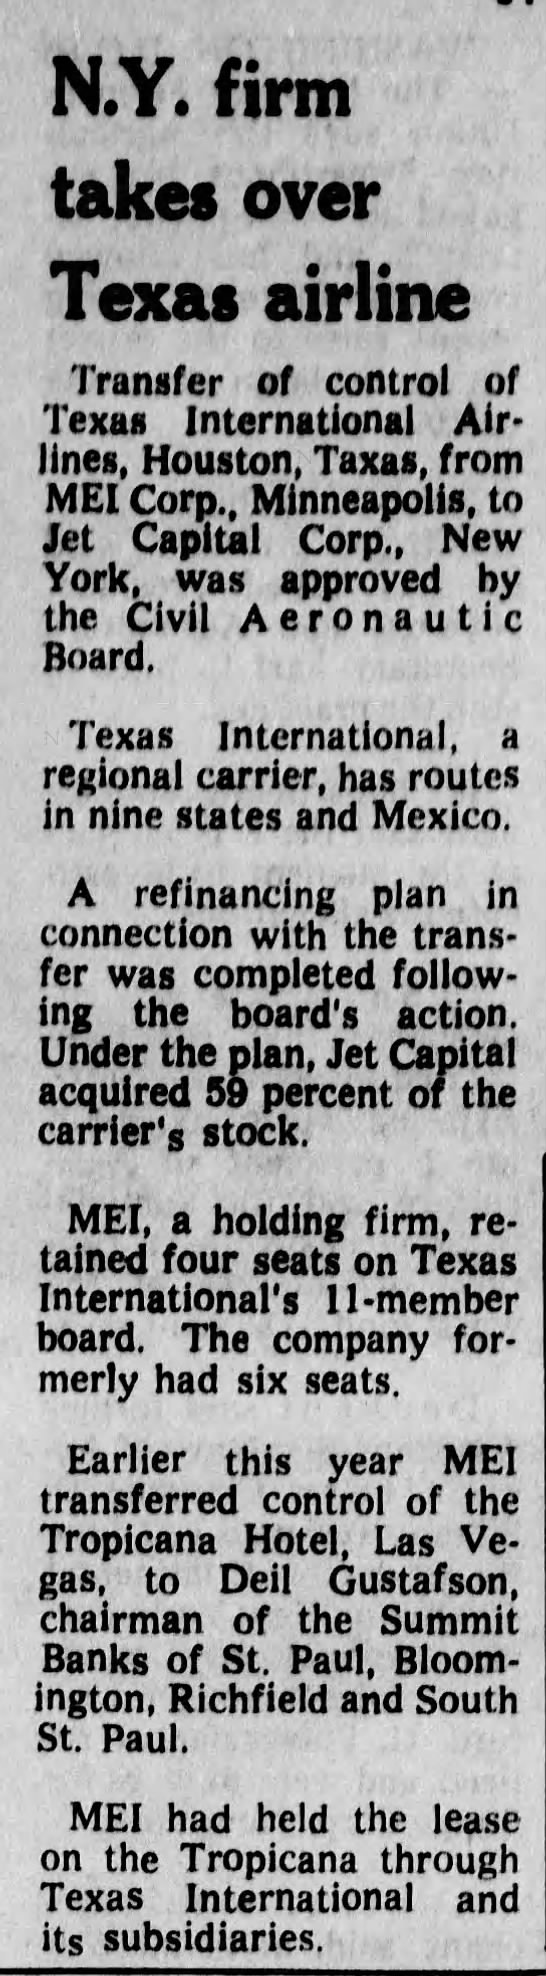 N.Y. firm takes over Texas airline -